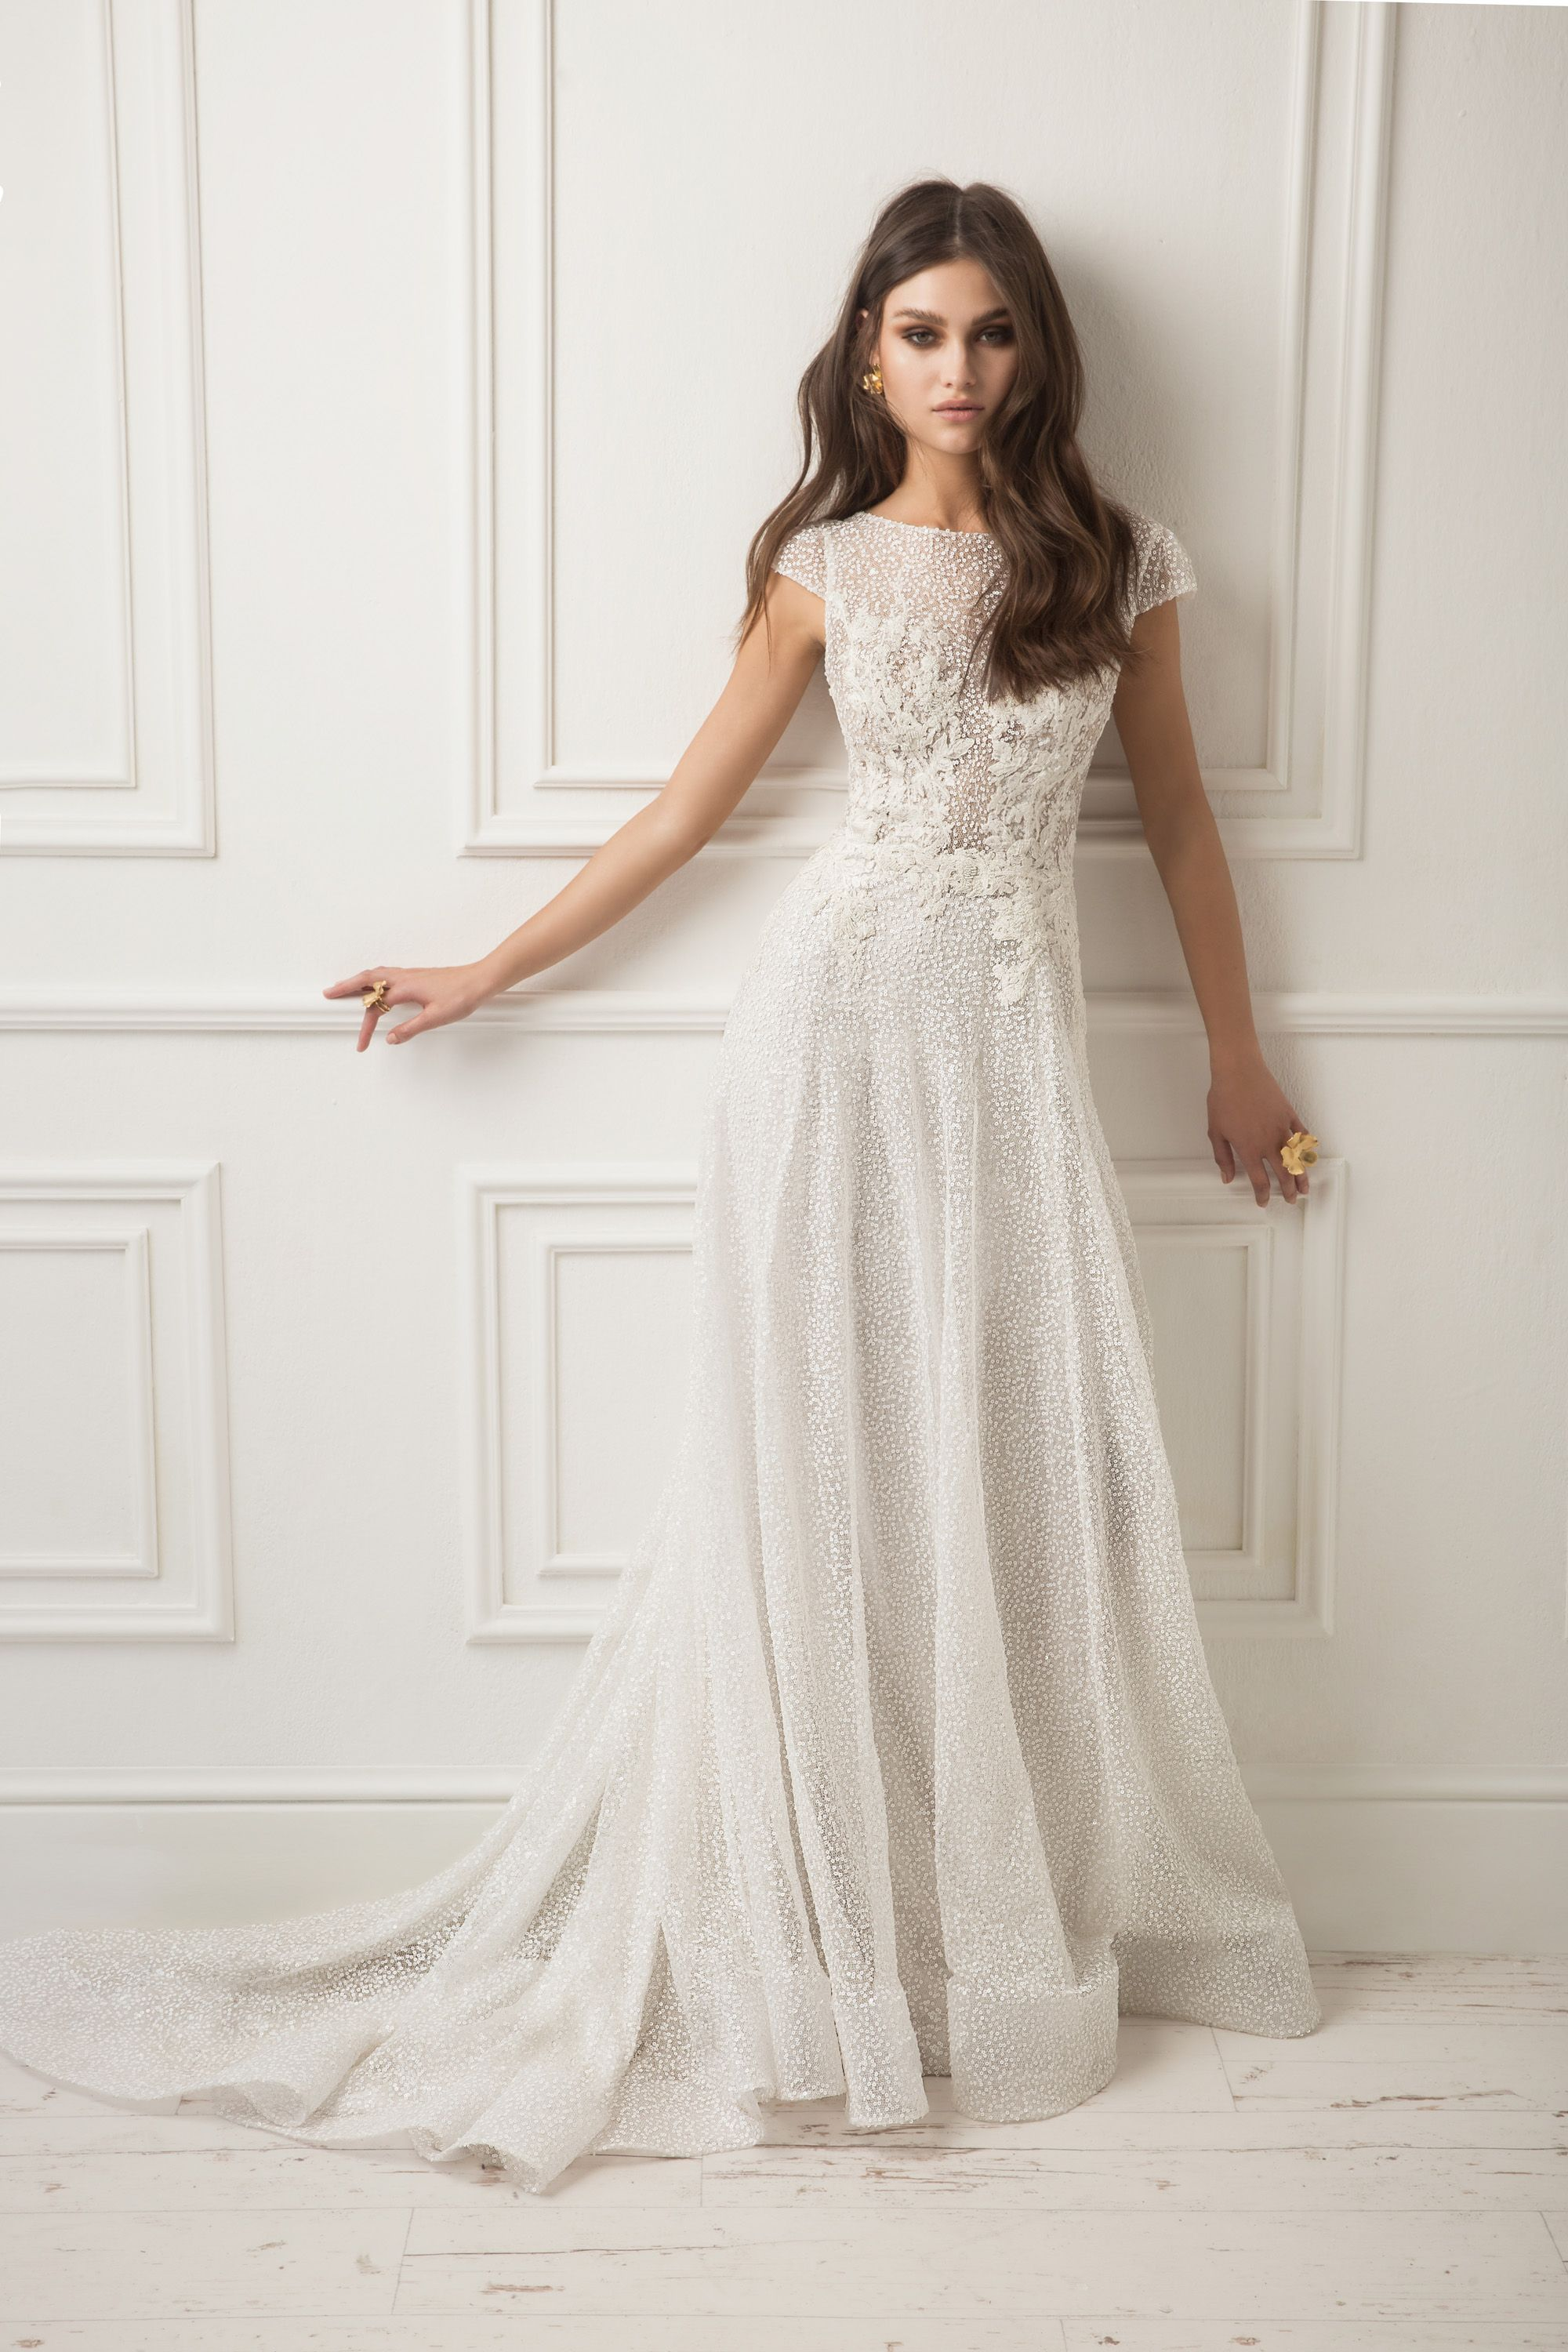 526a6b86514 Elodie - Dreams Collection by Lihi Hod available at The Bridal Atelier